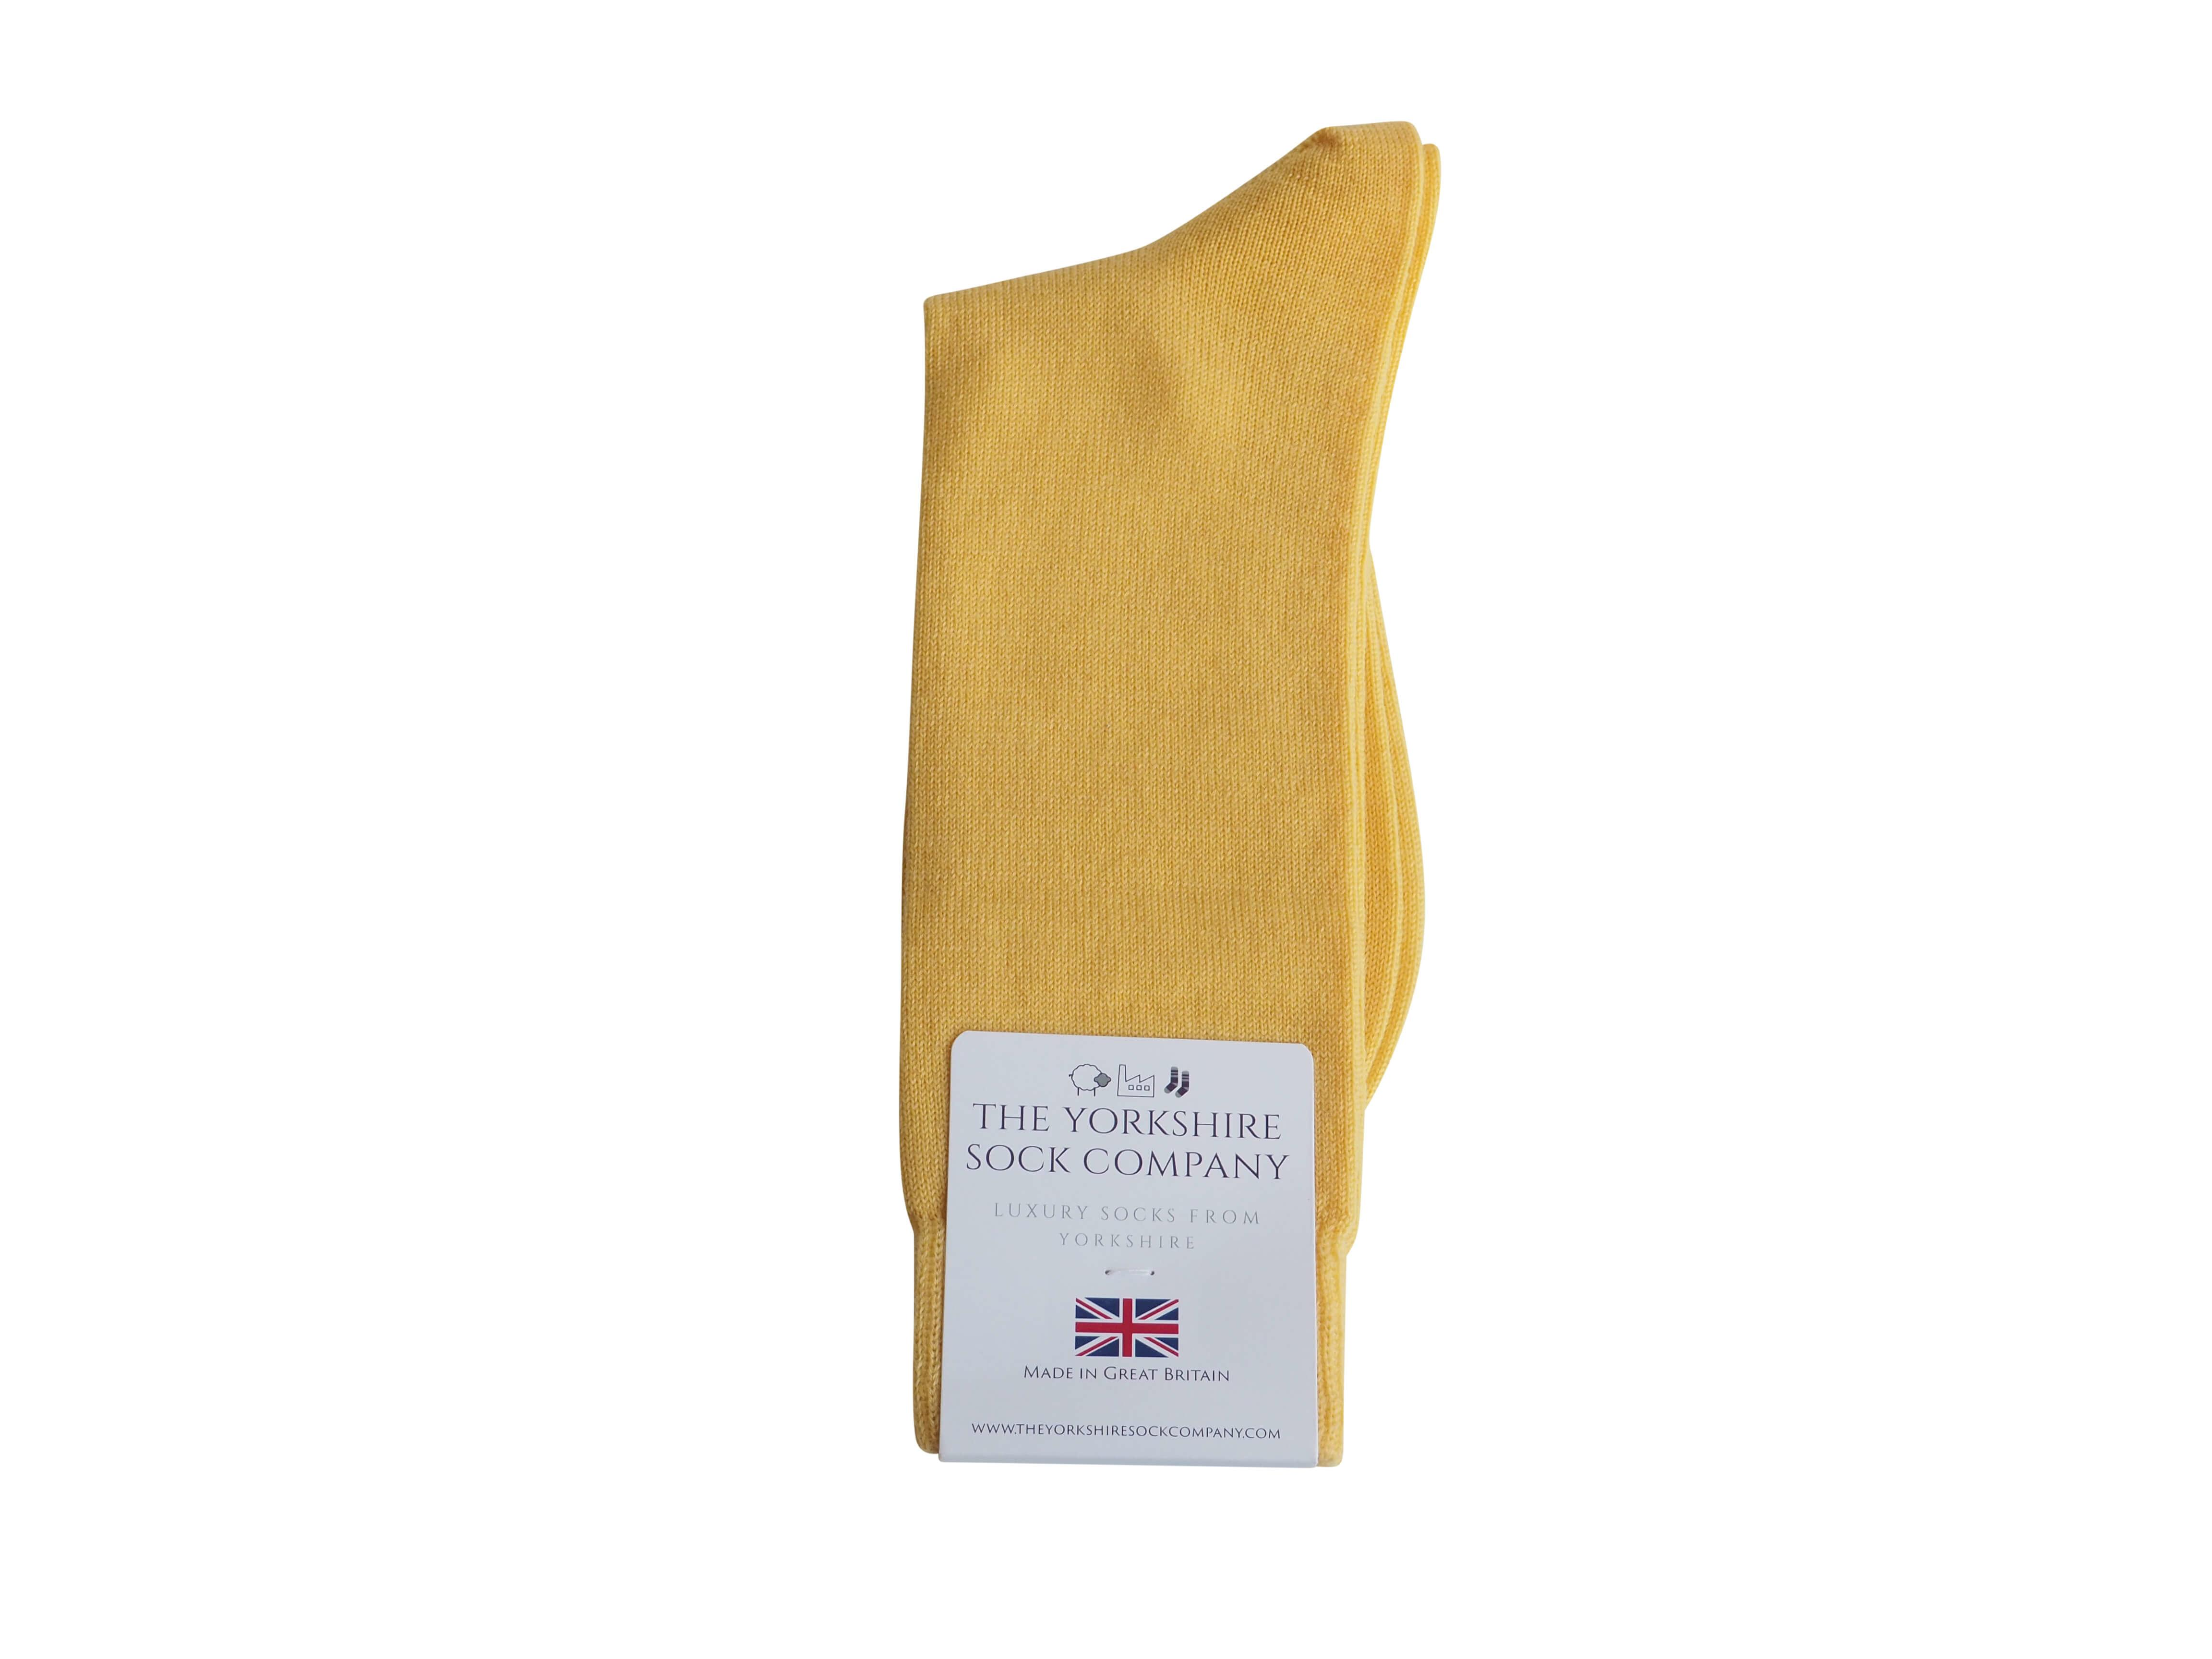 natural-merino-wool-yorkshire-socks-yellow-packed